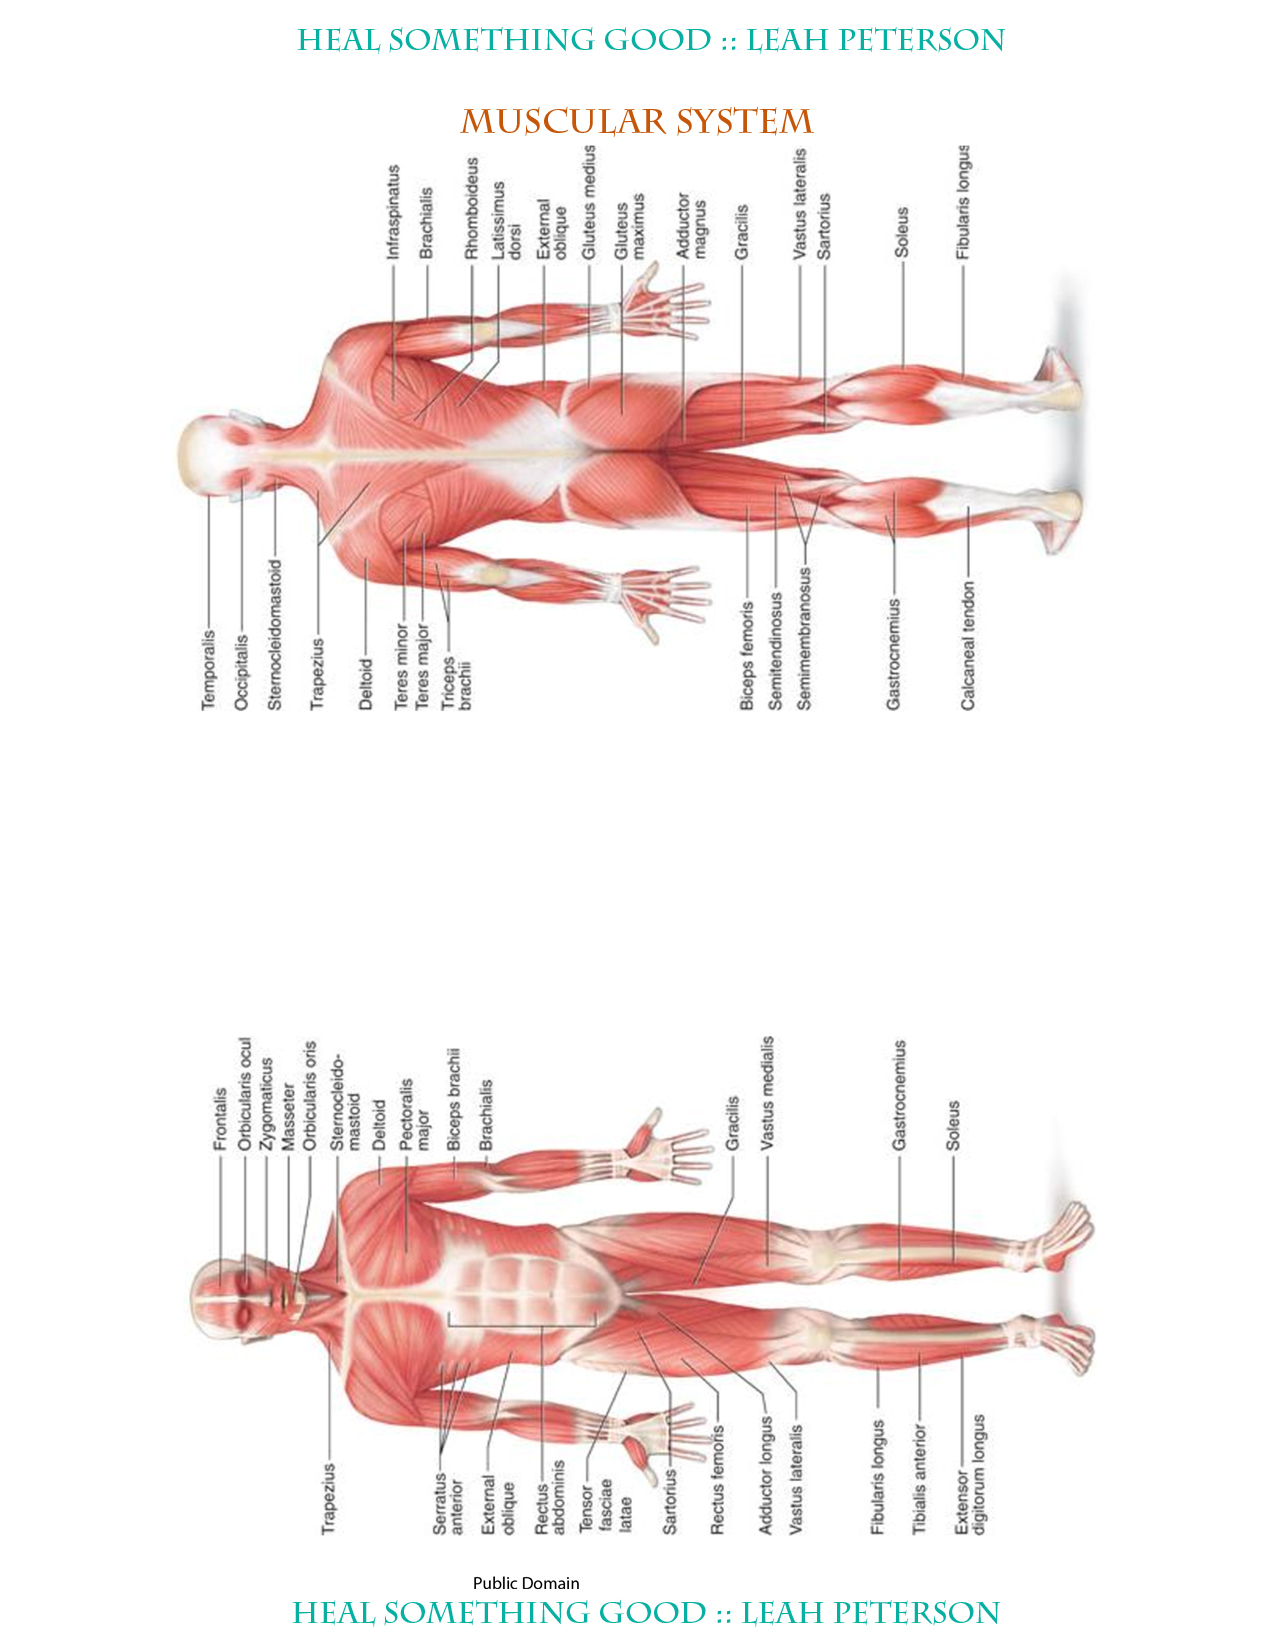 Chart Muscular System Heal Something Good